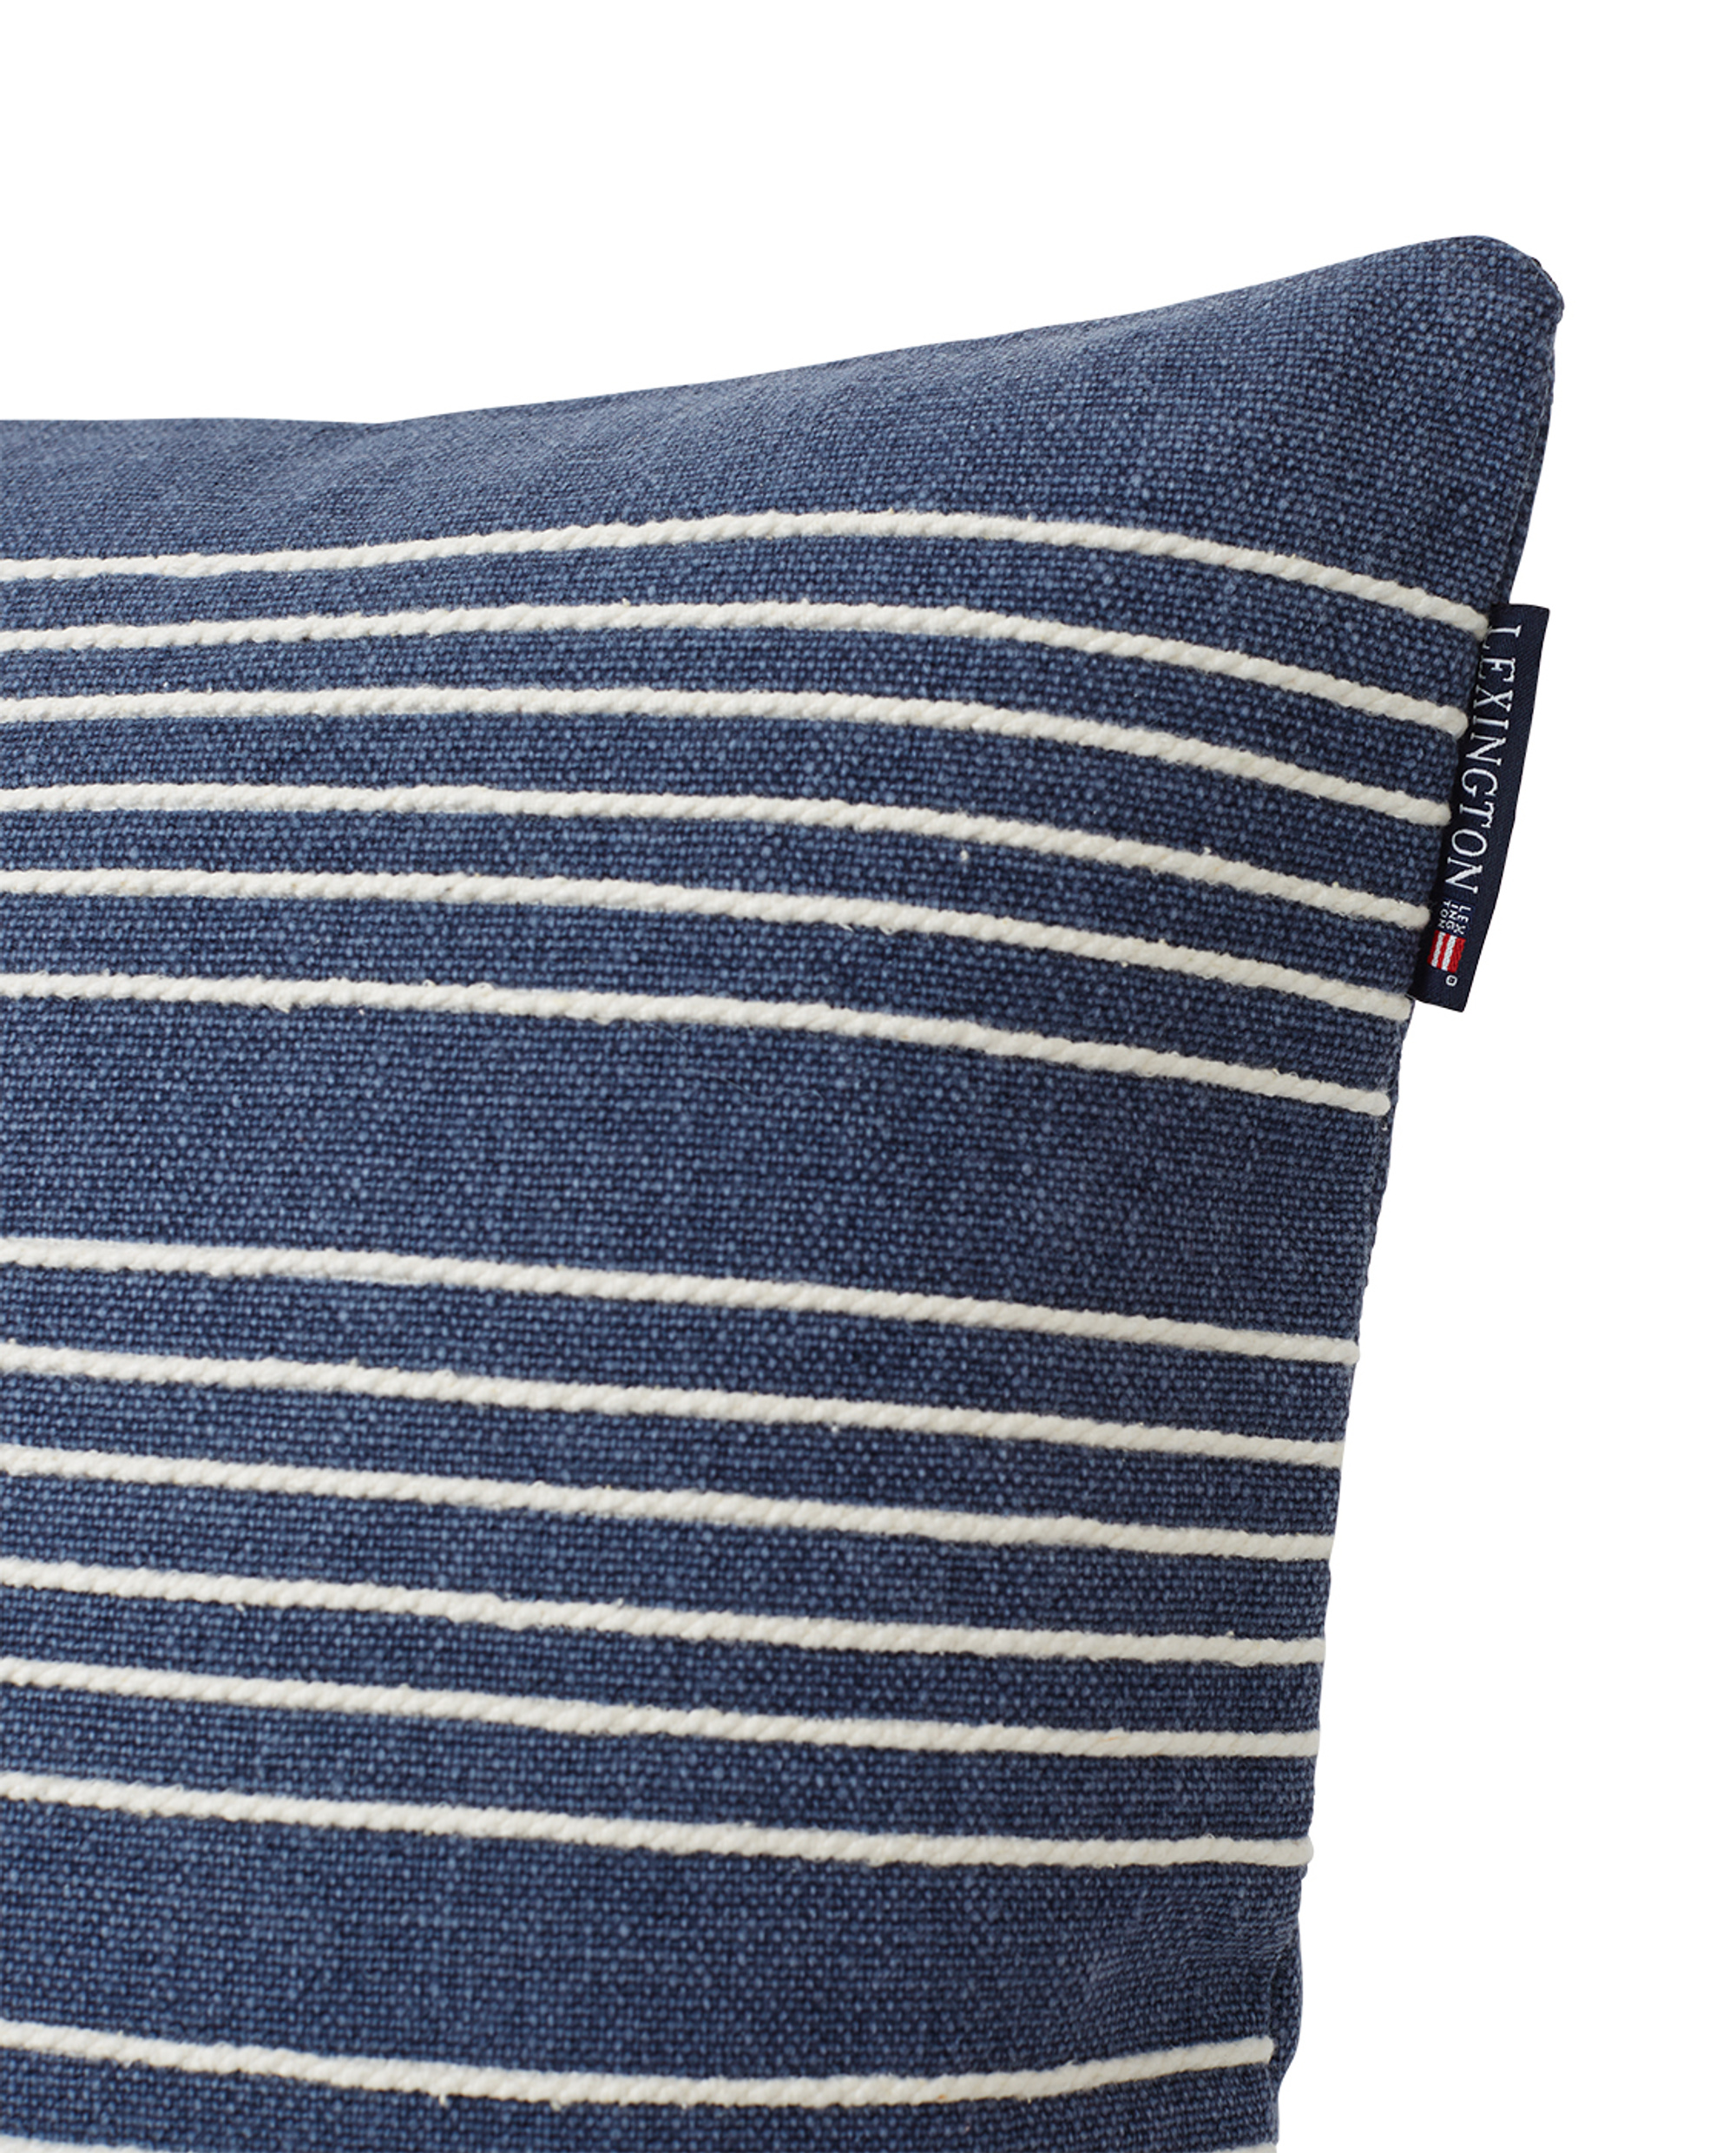 Structure Stripes Recycled Cotton Canvas Pillow Cover, Dark Blue/White